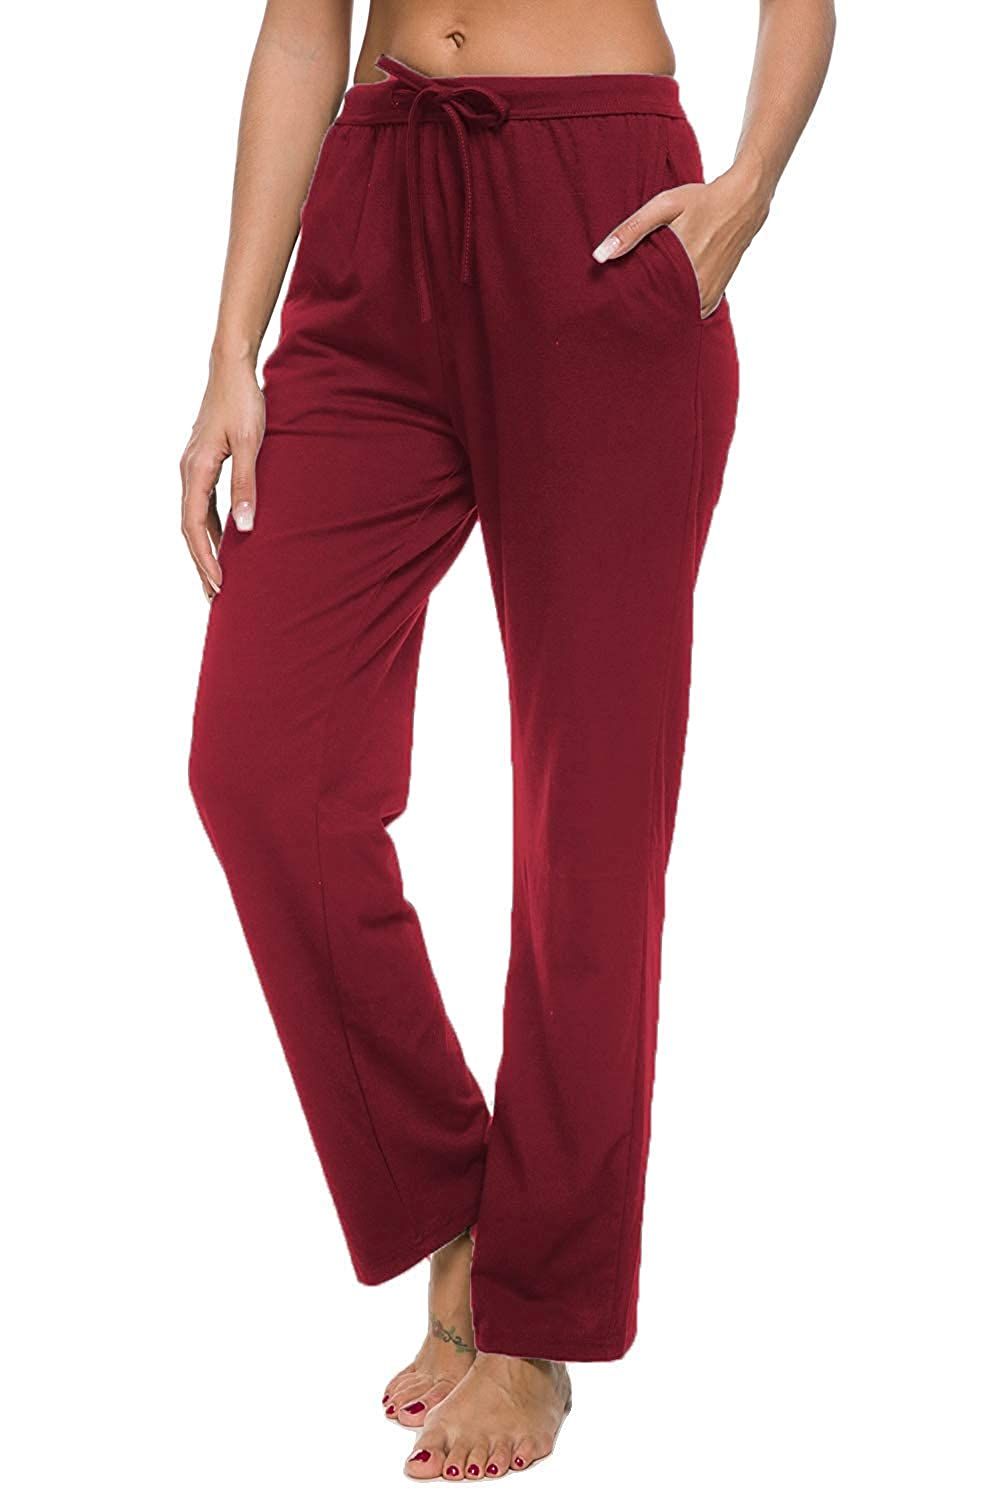 15 burgundy pinklux Women's Stretch Comfy High Waist Drawstring Wide Leg Polka Striped Pajama Pants Lounge